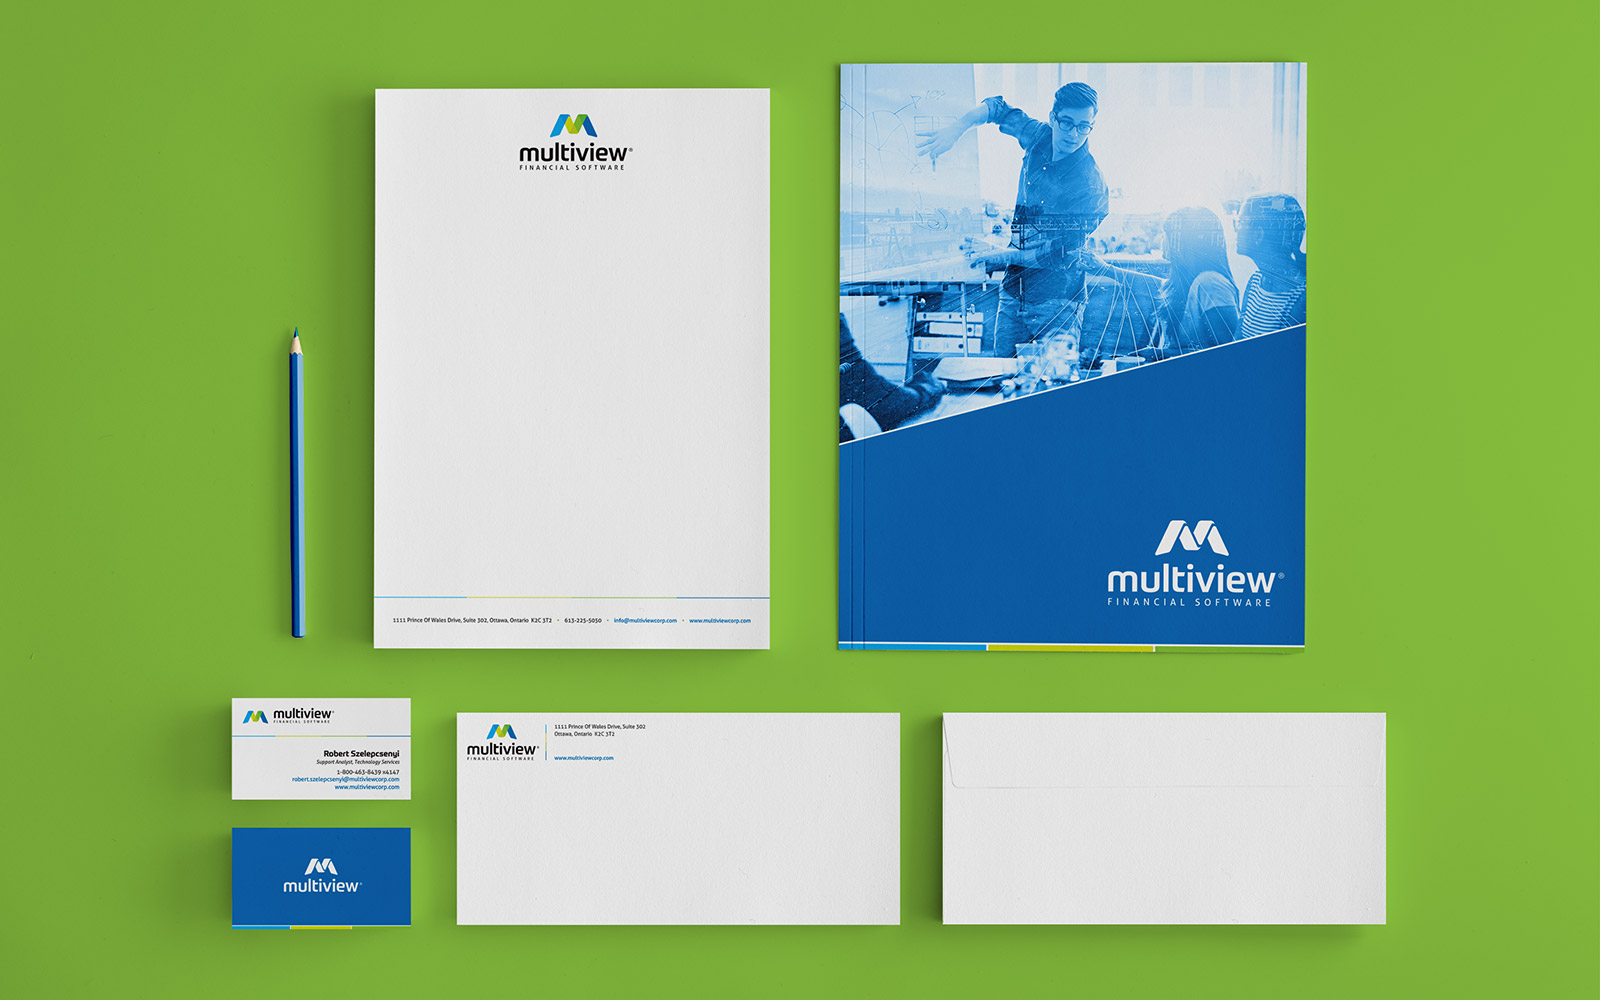 Multiview - Stationery Design